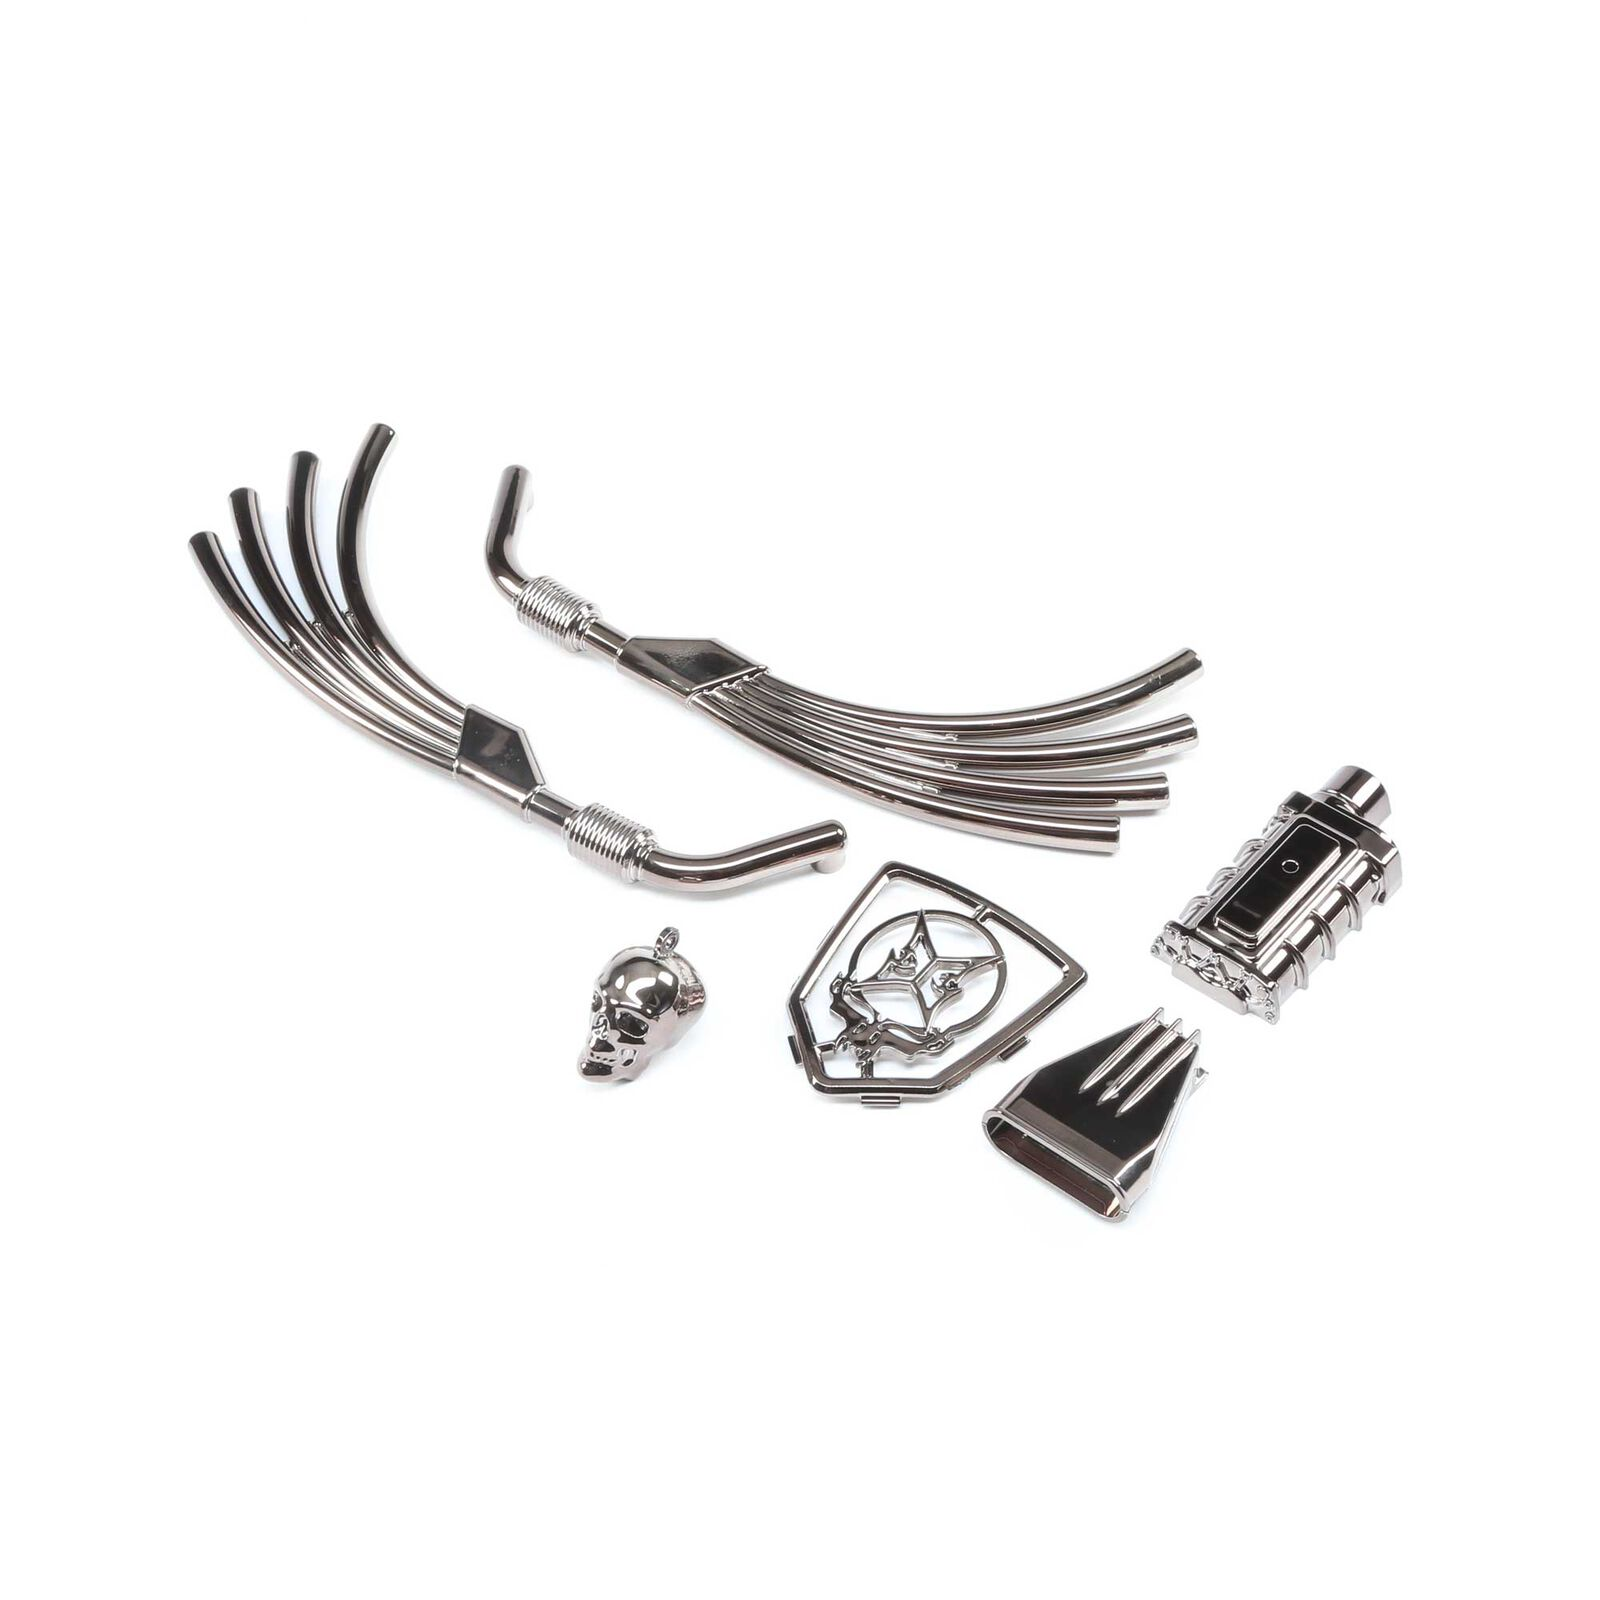 Motor, Exhaust and Grill Parts, Black Chrome: Doomsday